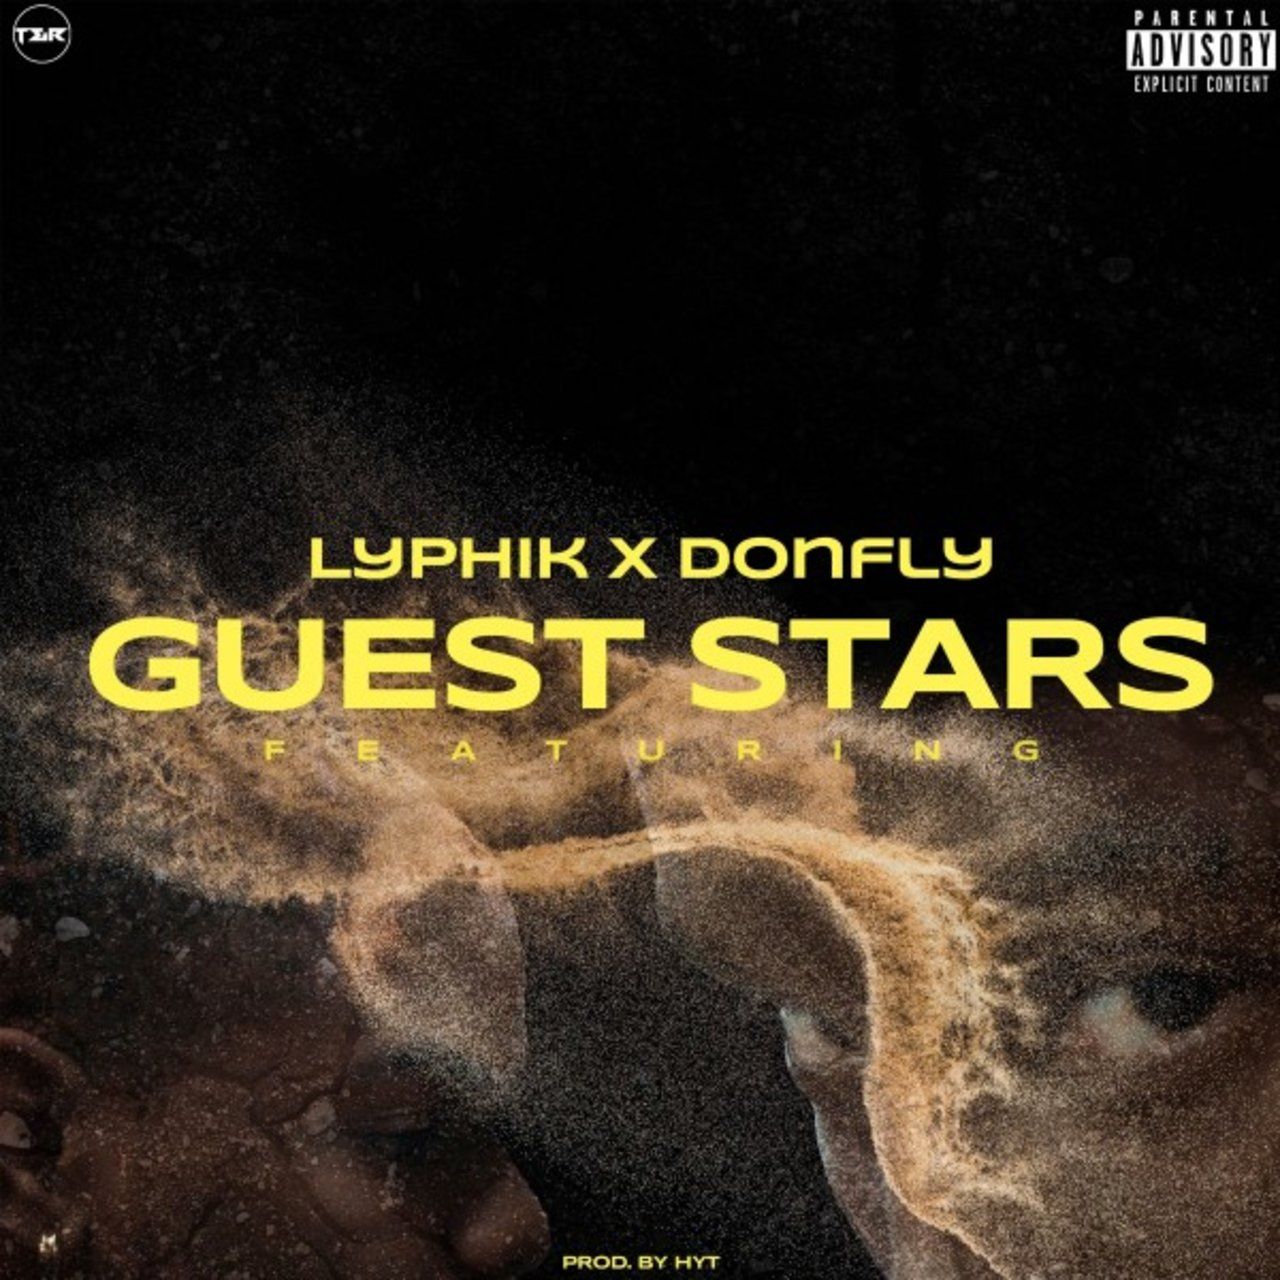 Lyphik and Donfly - Guest Stars (Cover)